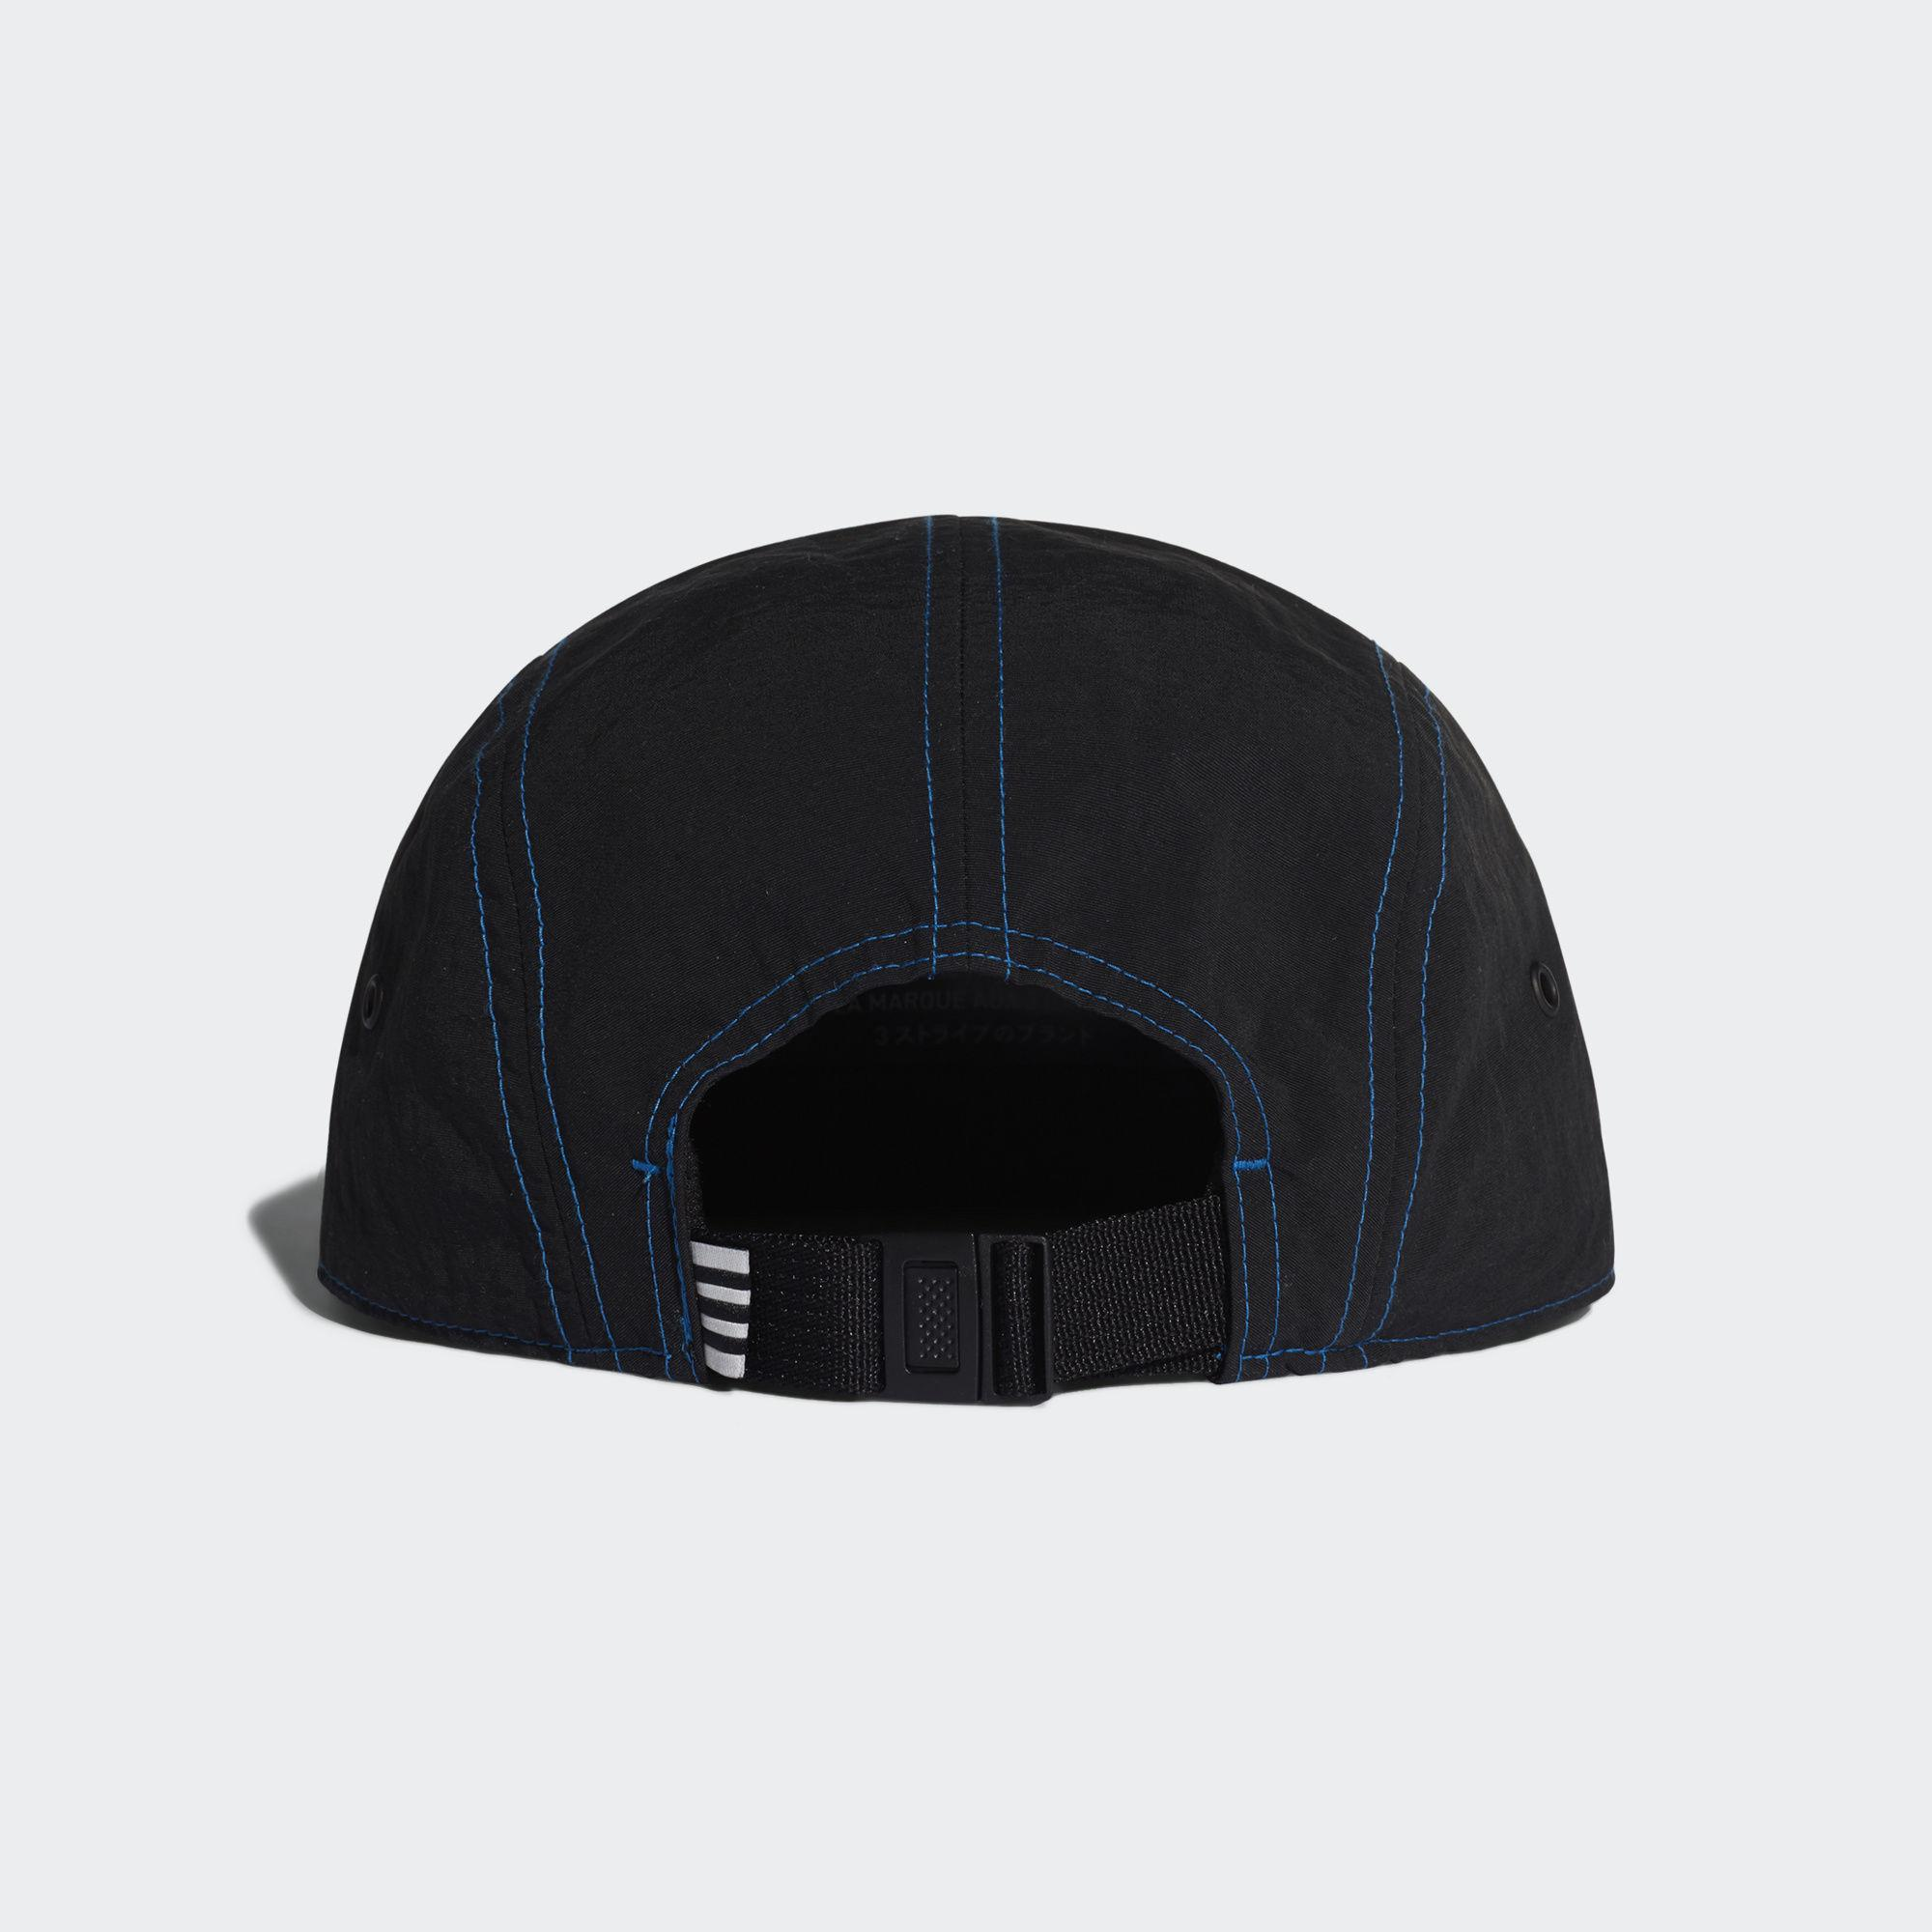 adidas Nmd 5-panel Cap in Black for Men - Lyst 41413695c4a0